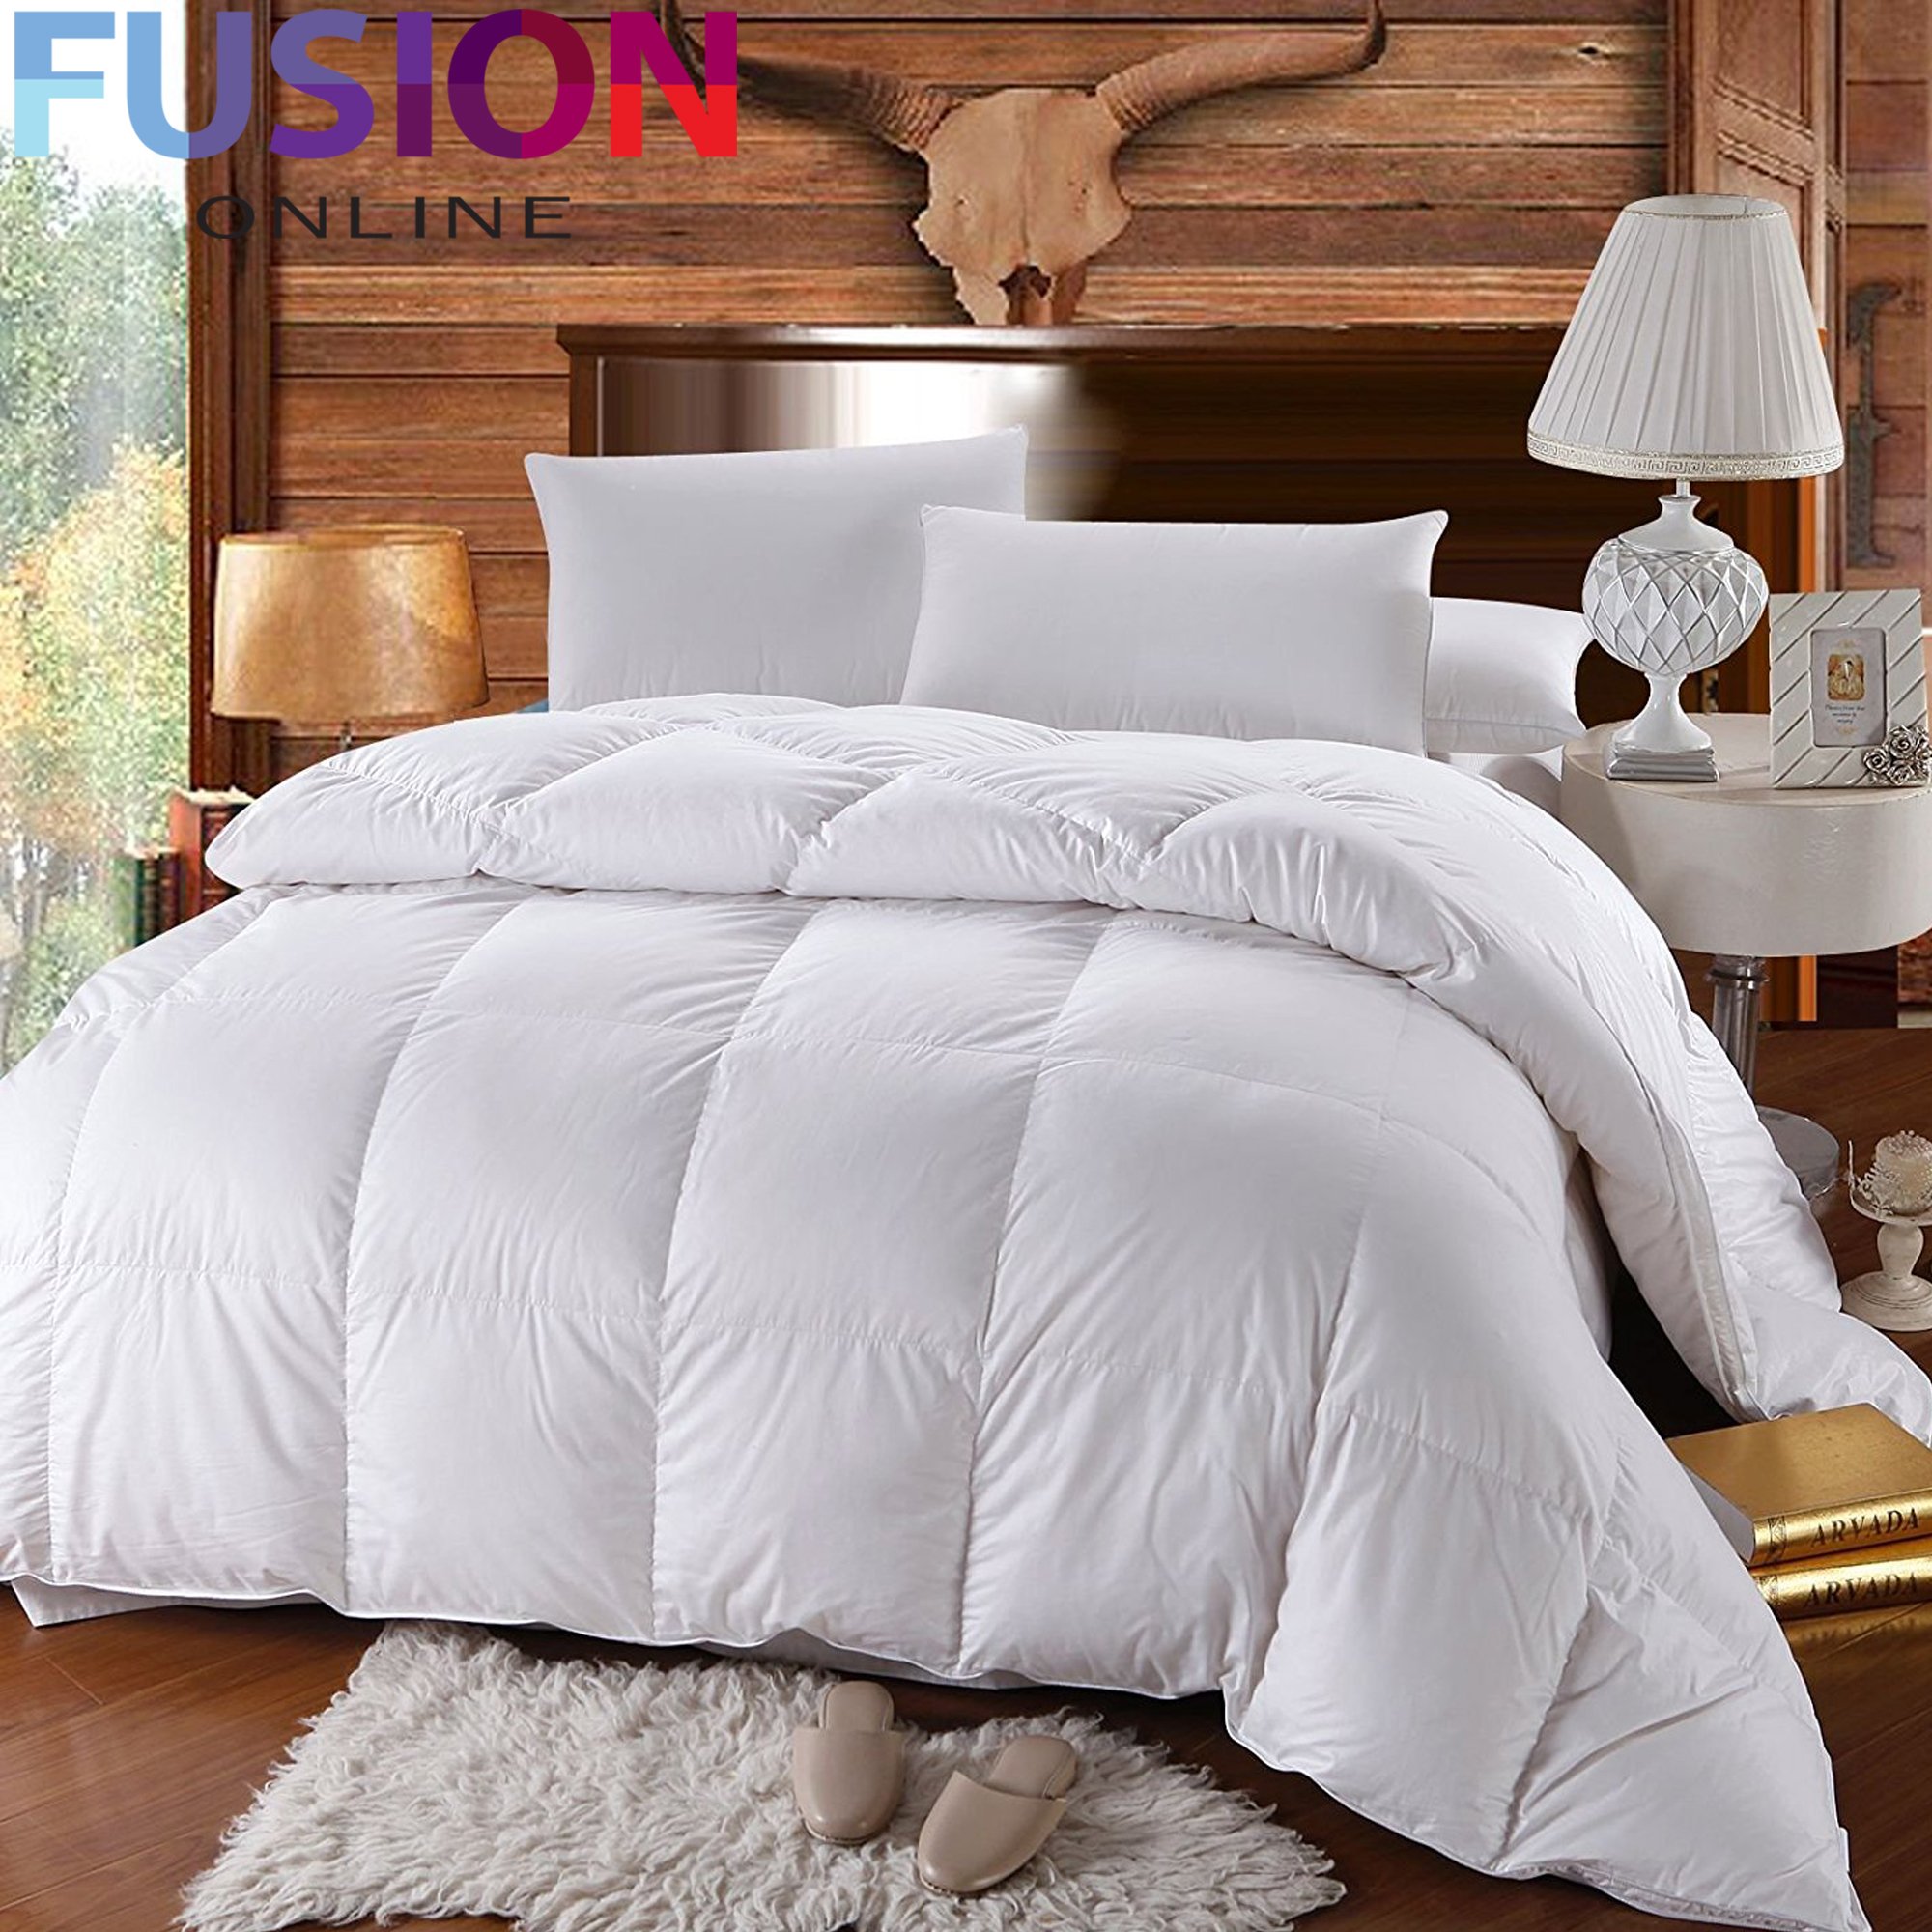 white modernplum feather assorted anna products colors duvet